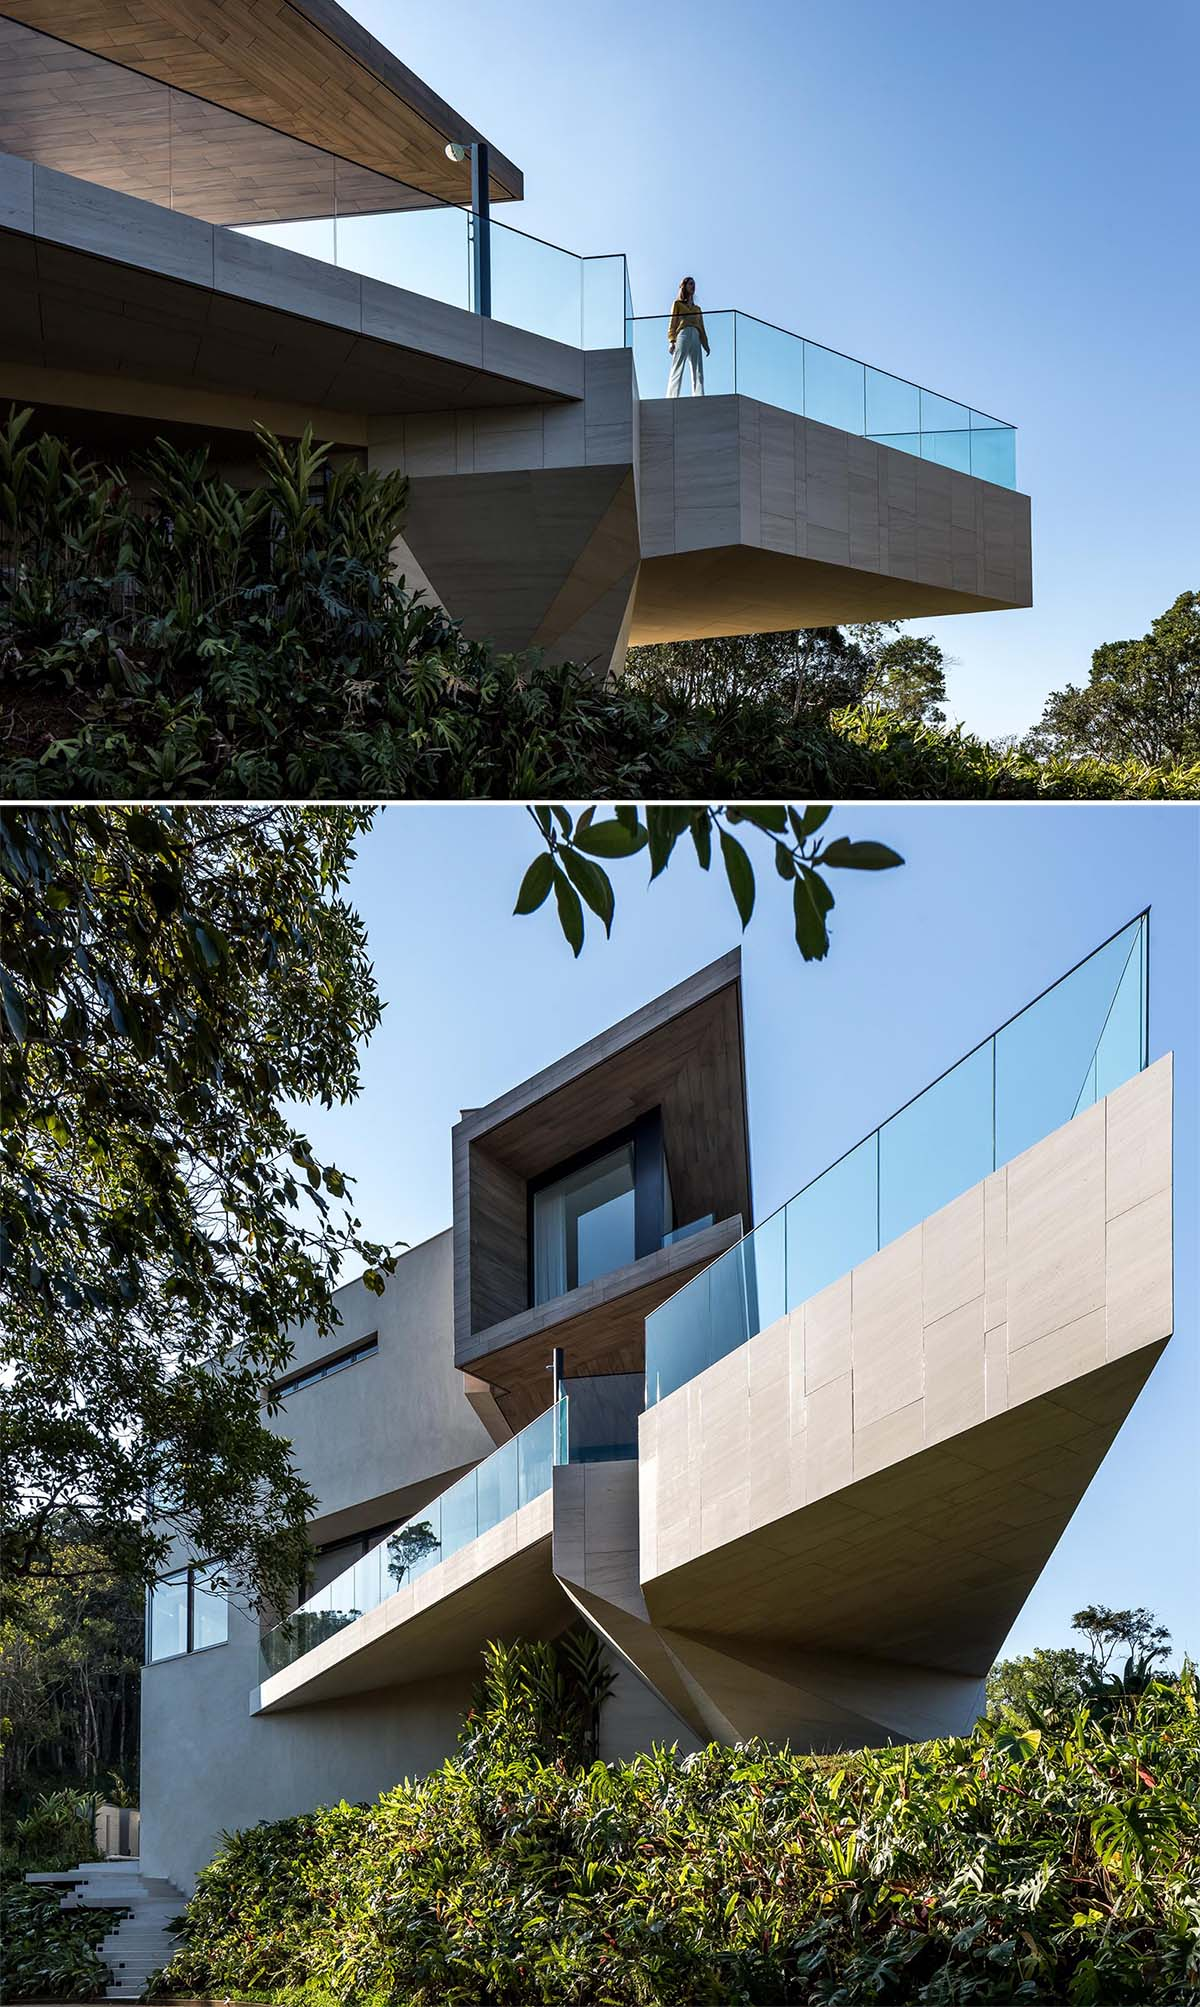 This modern house has a swimming pool, and it's easy to see when looking up at it from below, how cantilevered it is.